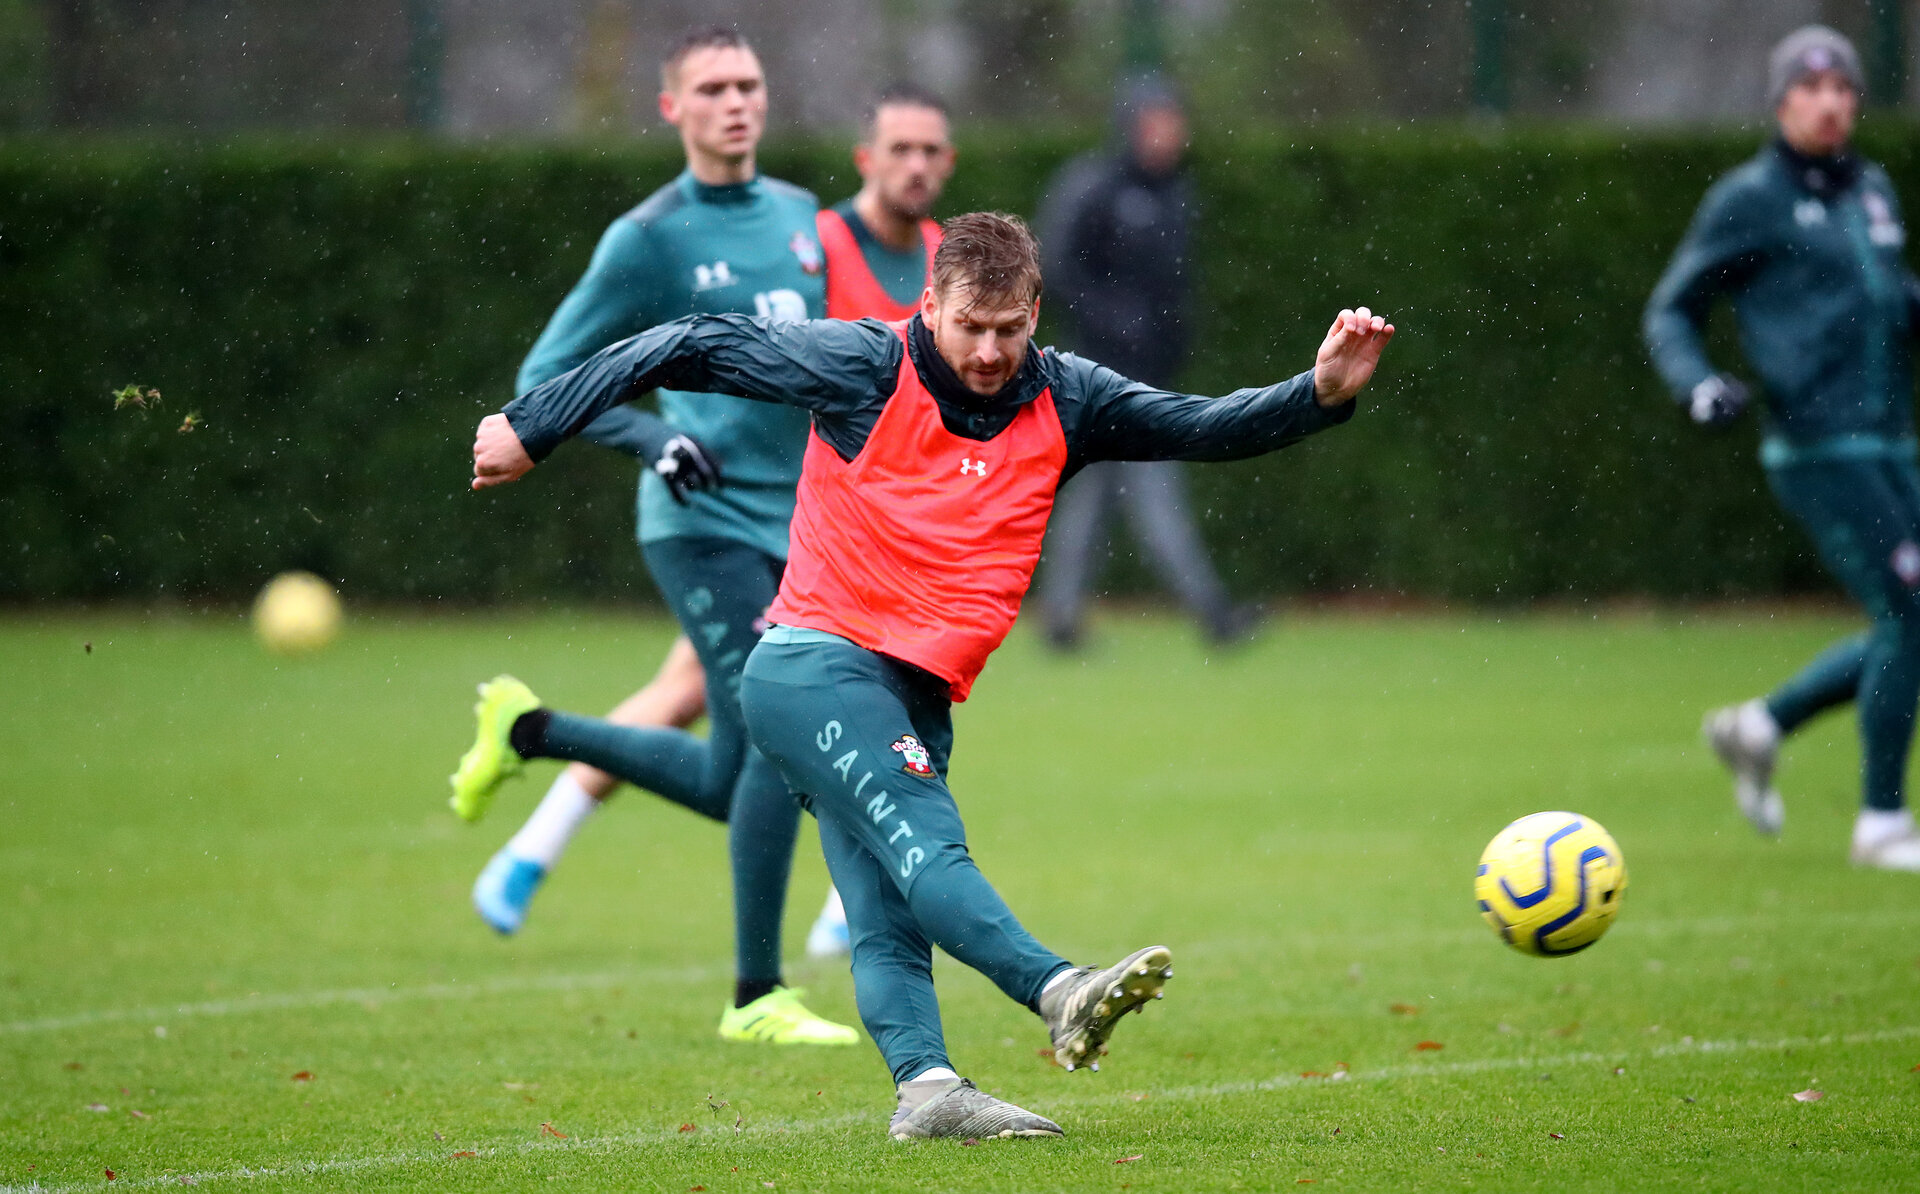 SOUTHAMPTON, ENGLAND - DECEMBER 09: Stuart Armstrong during a Southampton FC training session on December 12, 2019 in Southampton, England. (Photo by Matt Watson/Southampton FC via Getty Images)